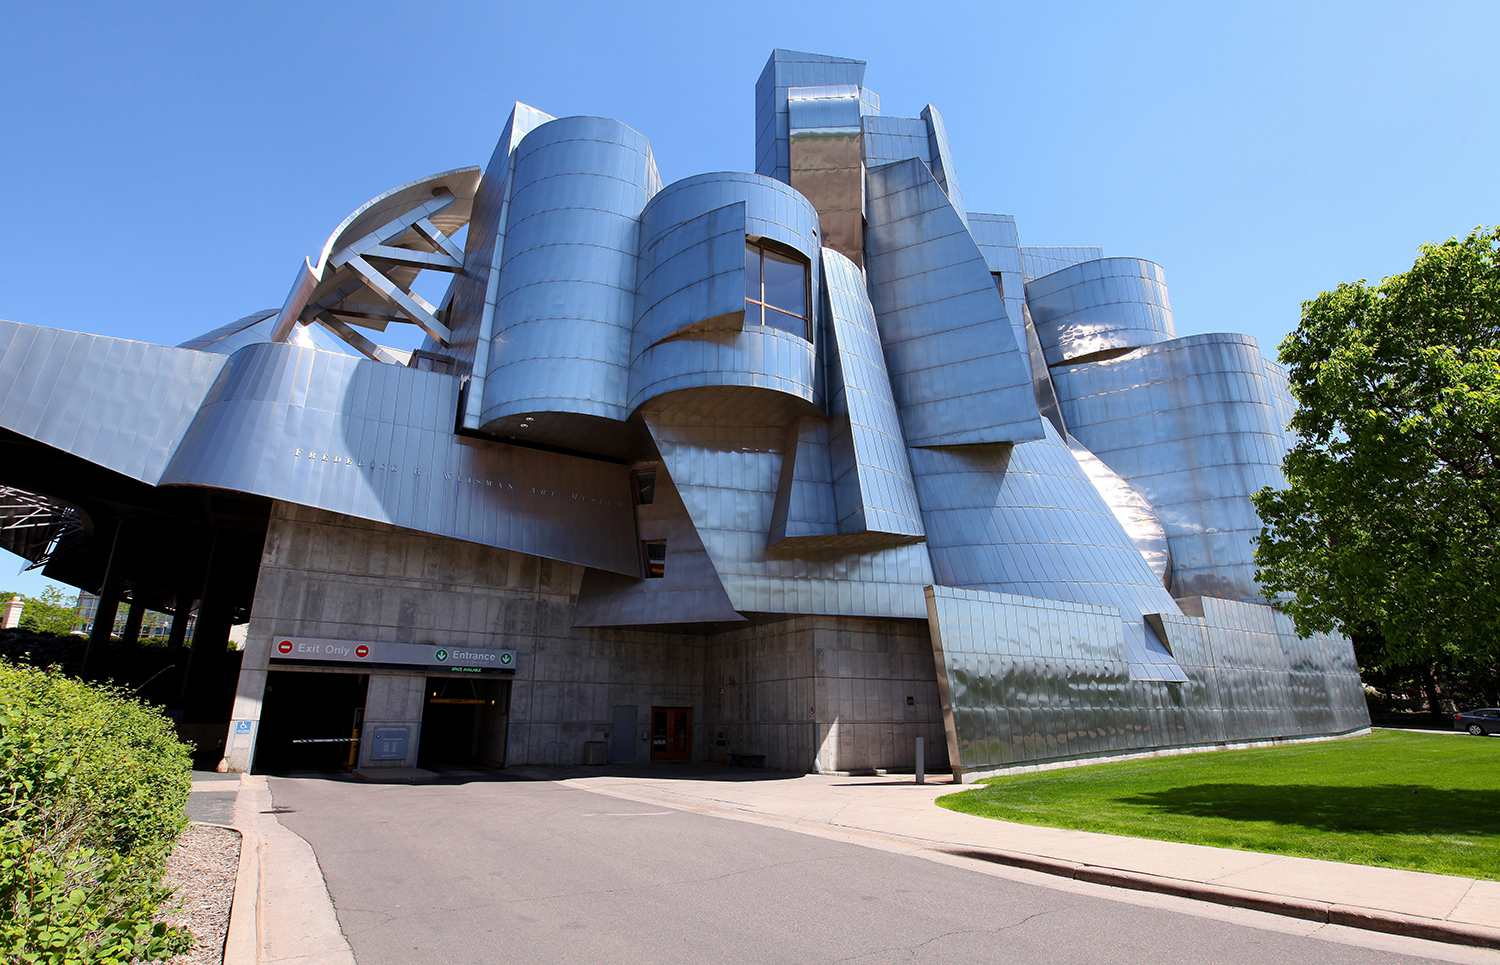 Frank Gehry's Frederick R. Weisman Art Museum on the University of Minnesota campus.